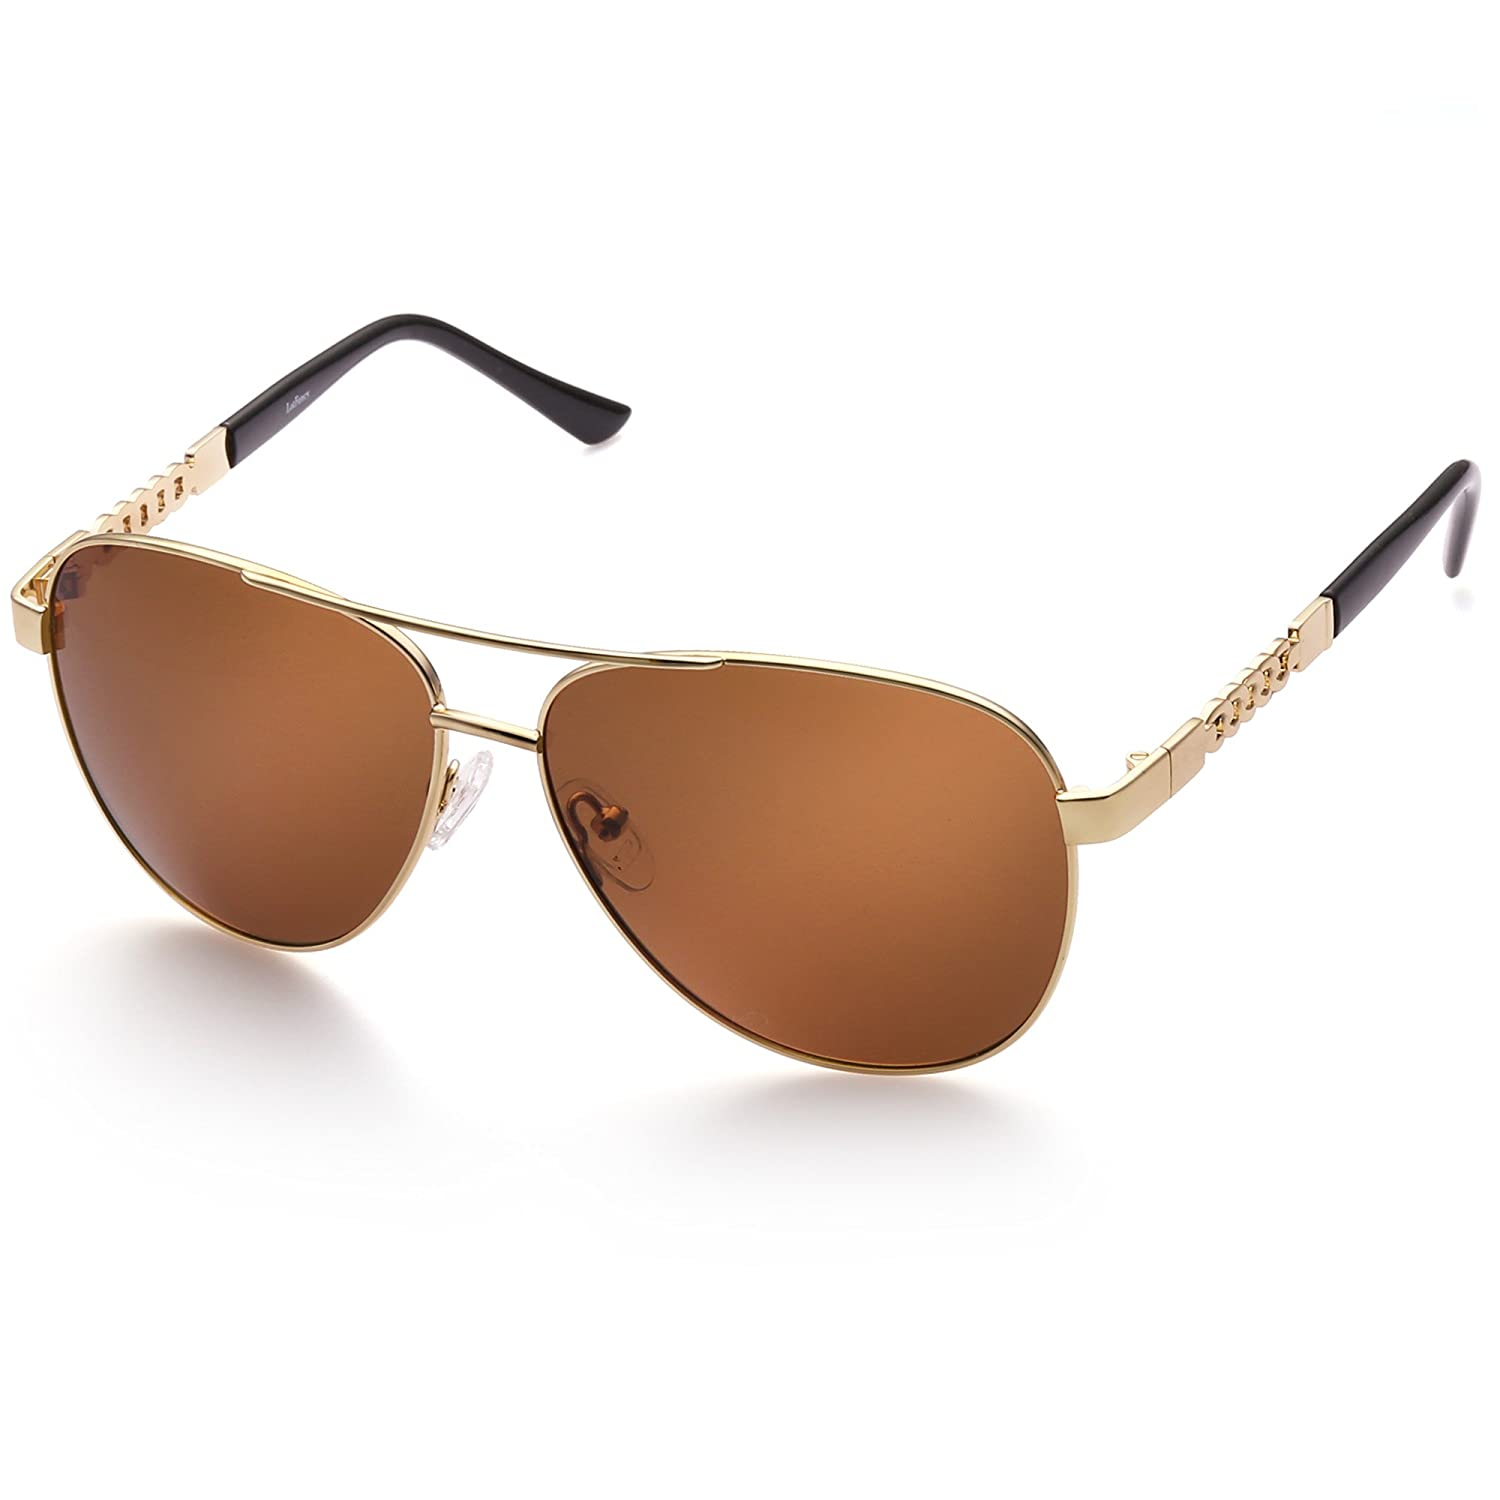 9256aacca0 Amazon.com  Aviator Sunglasses for Women